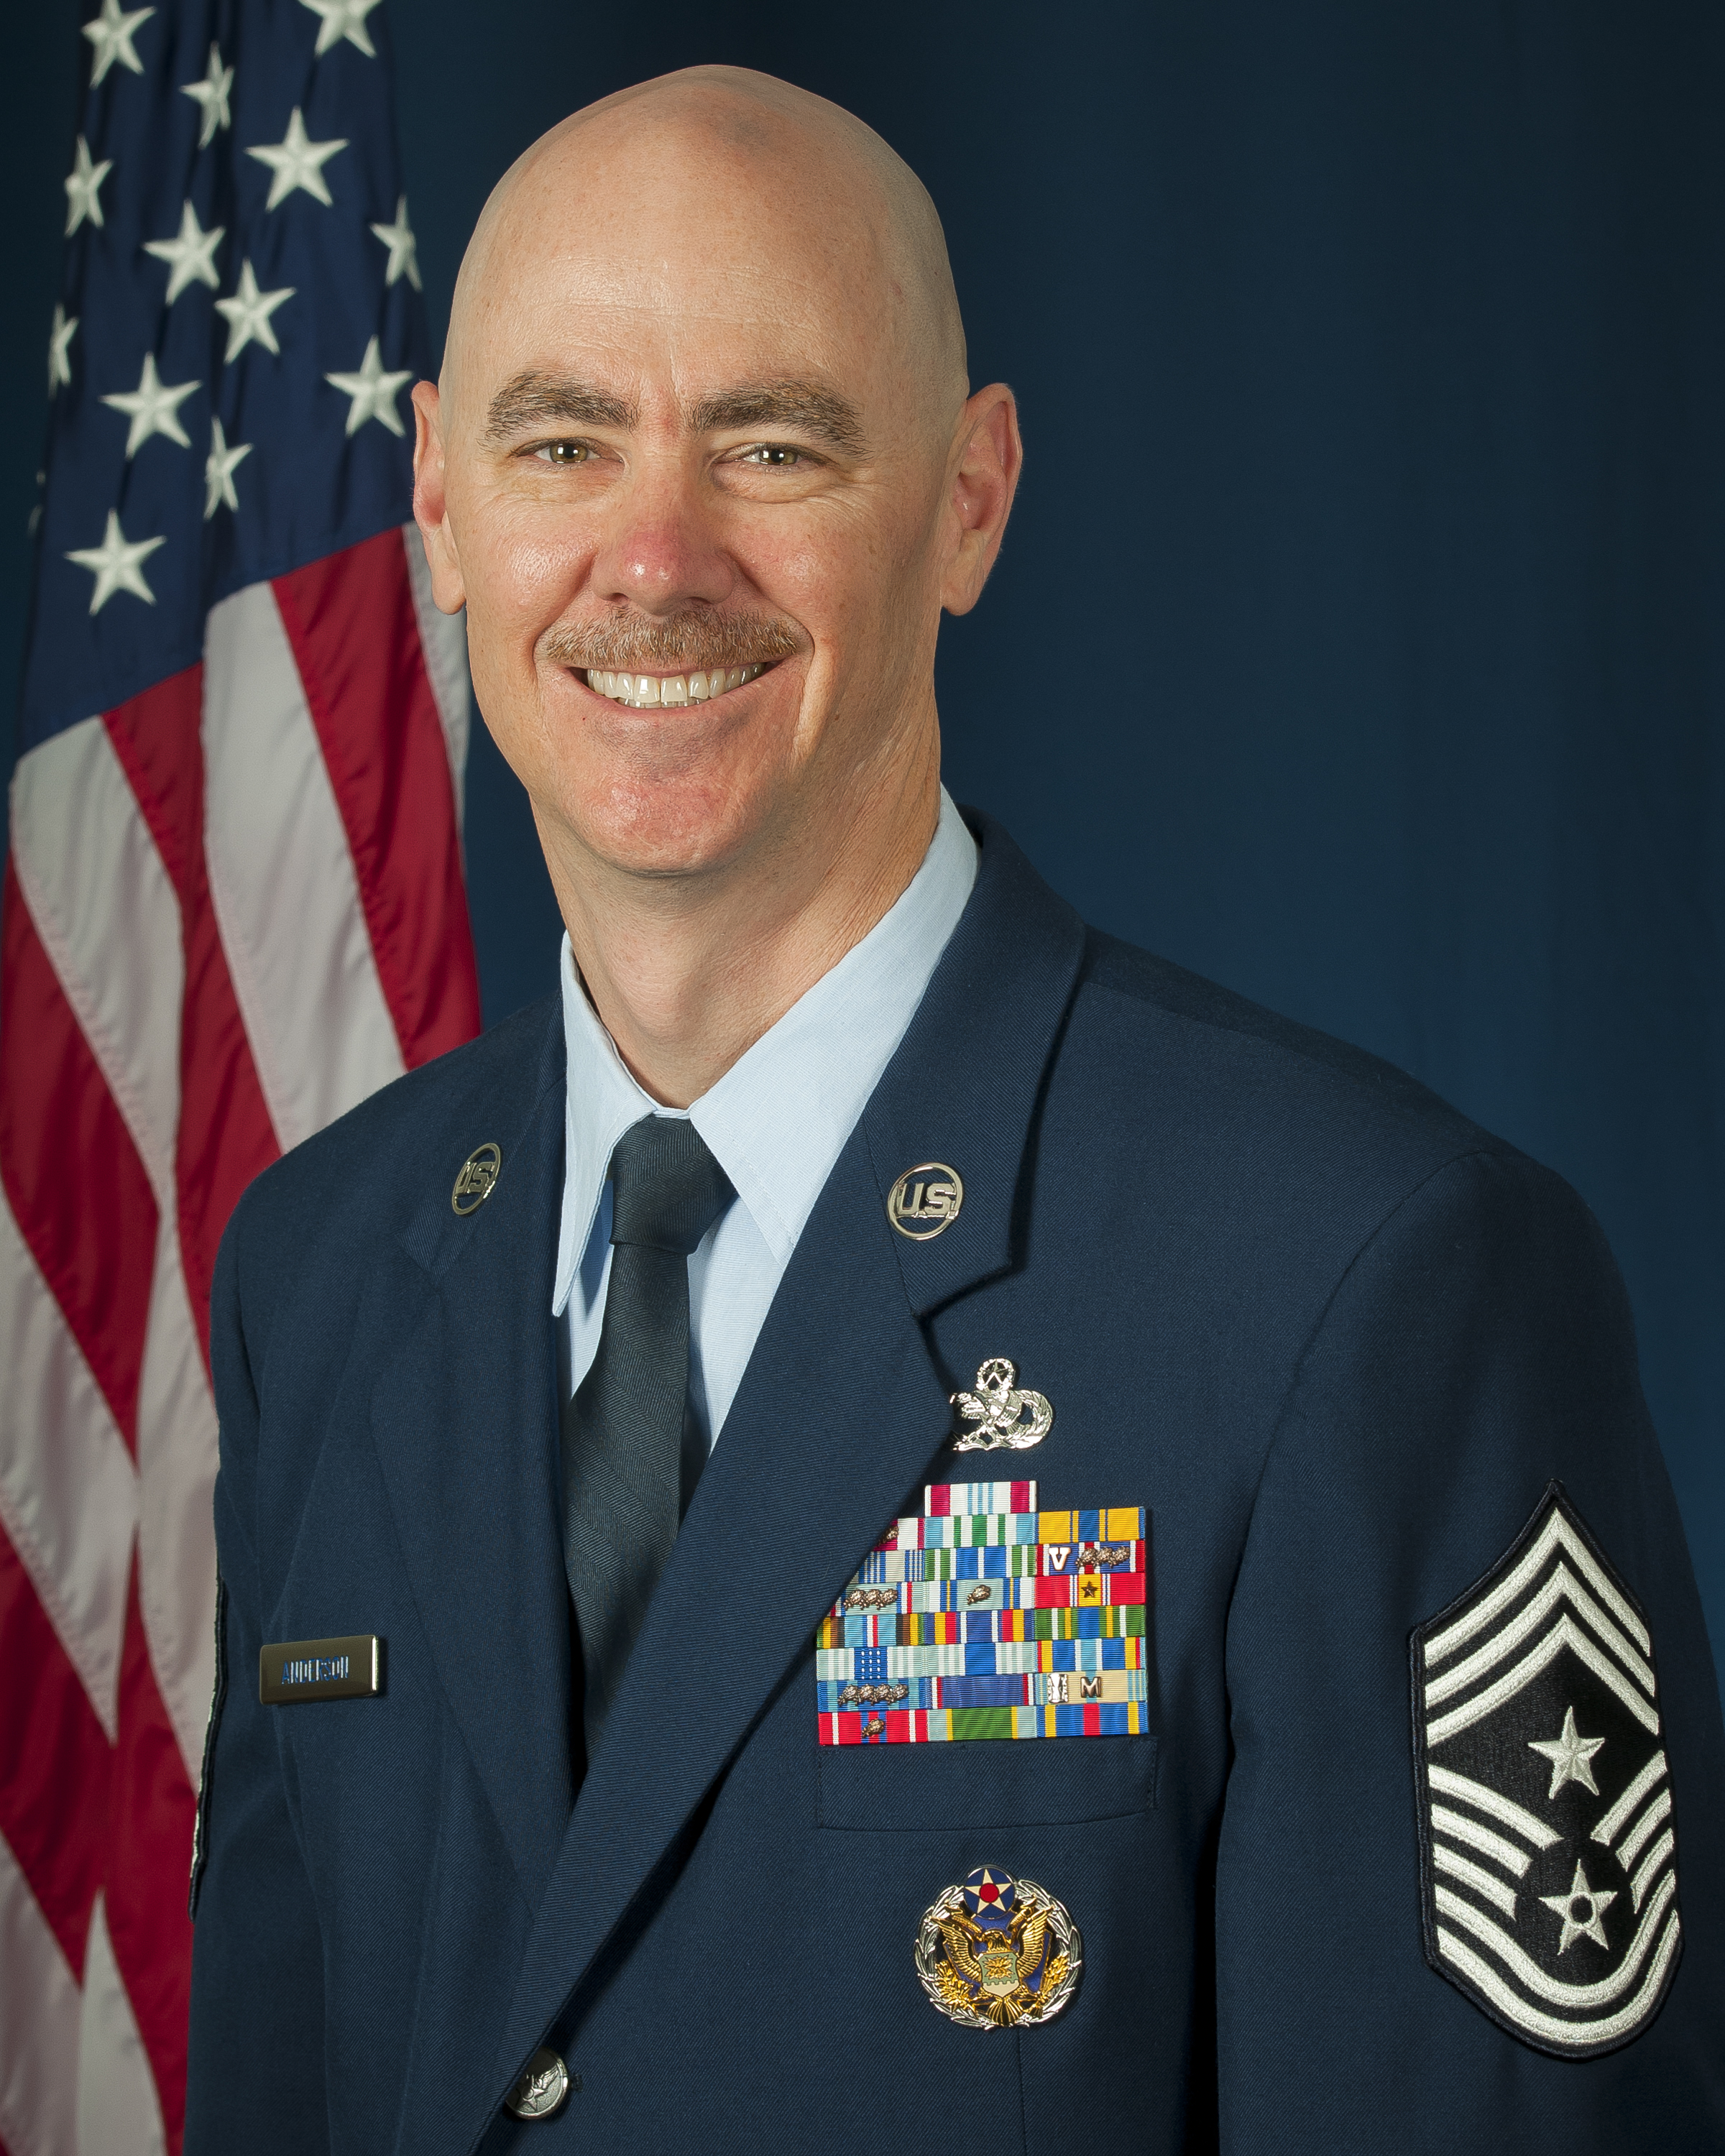 Chief Master Sgt. Ronald C. Anderson